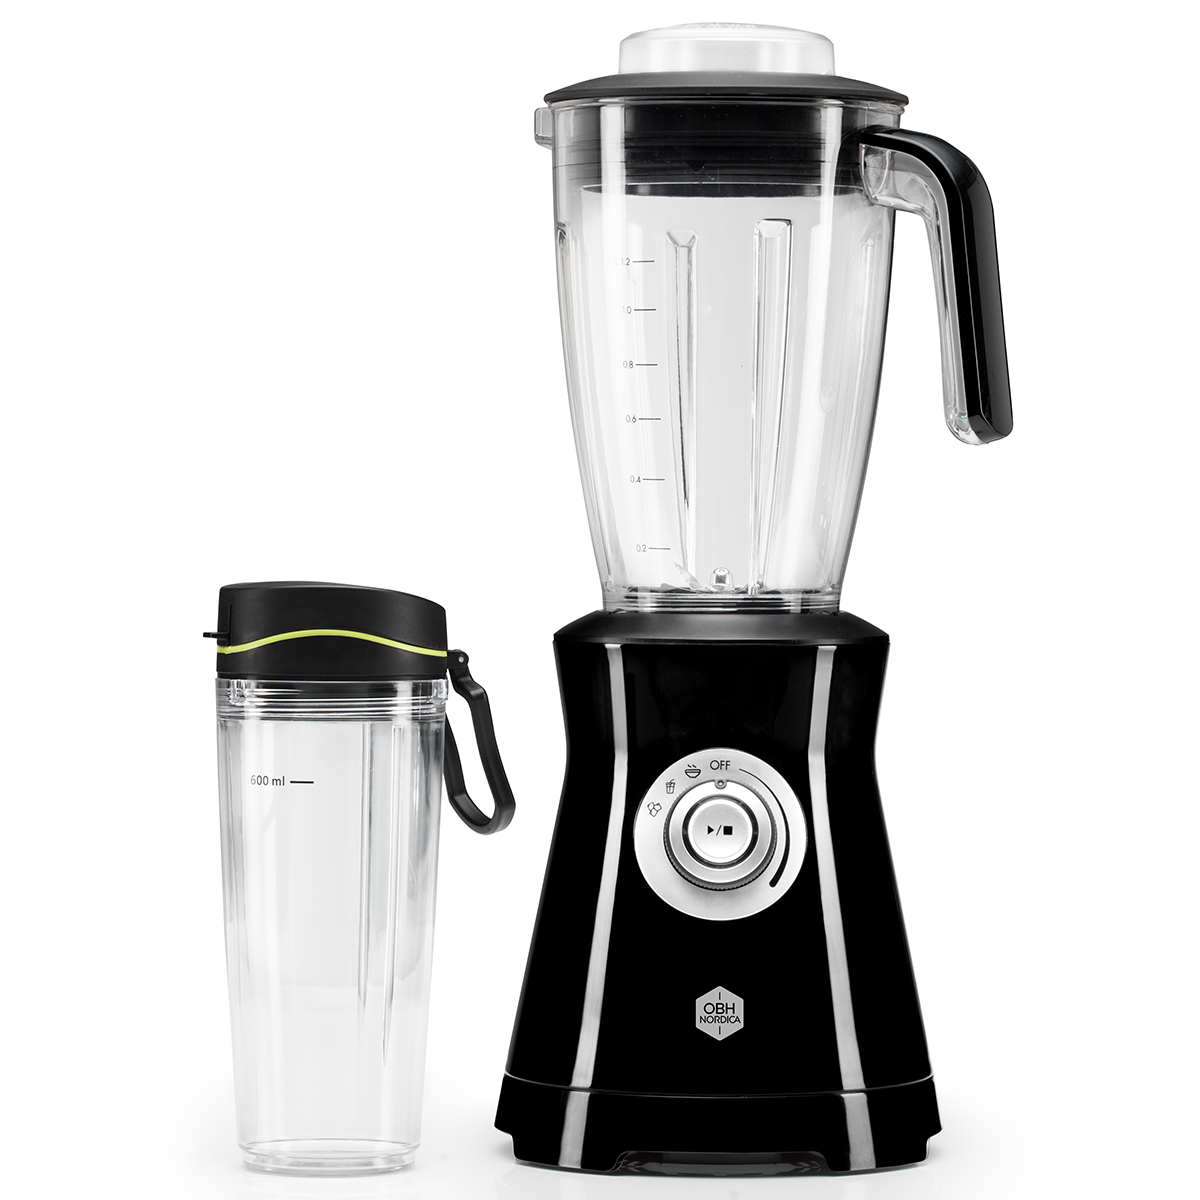 Image of   OBH Nordica blender - Ultimate Compact - Sort